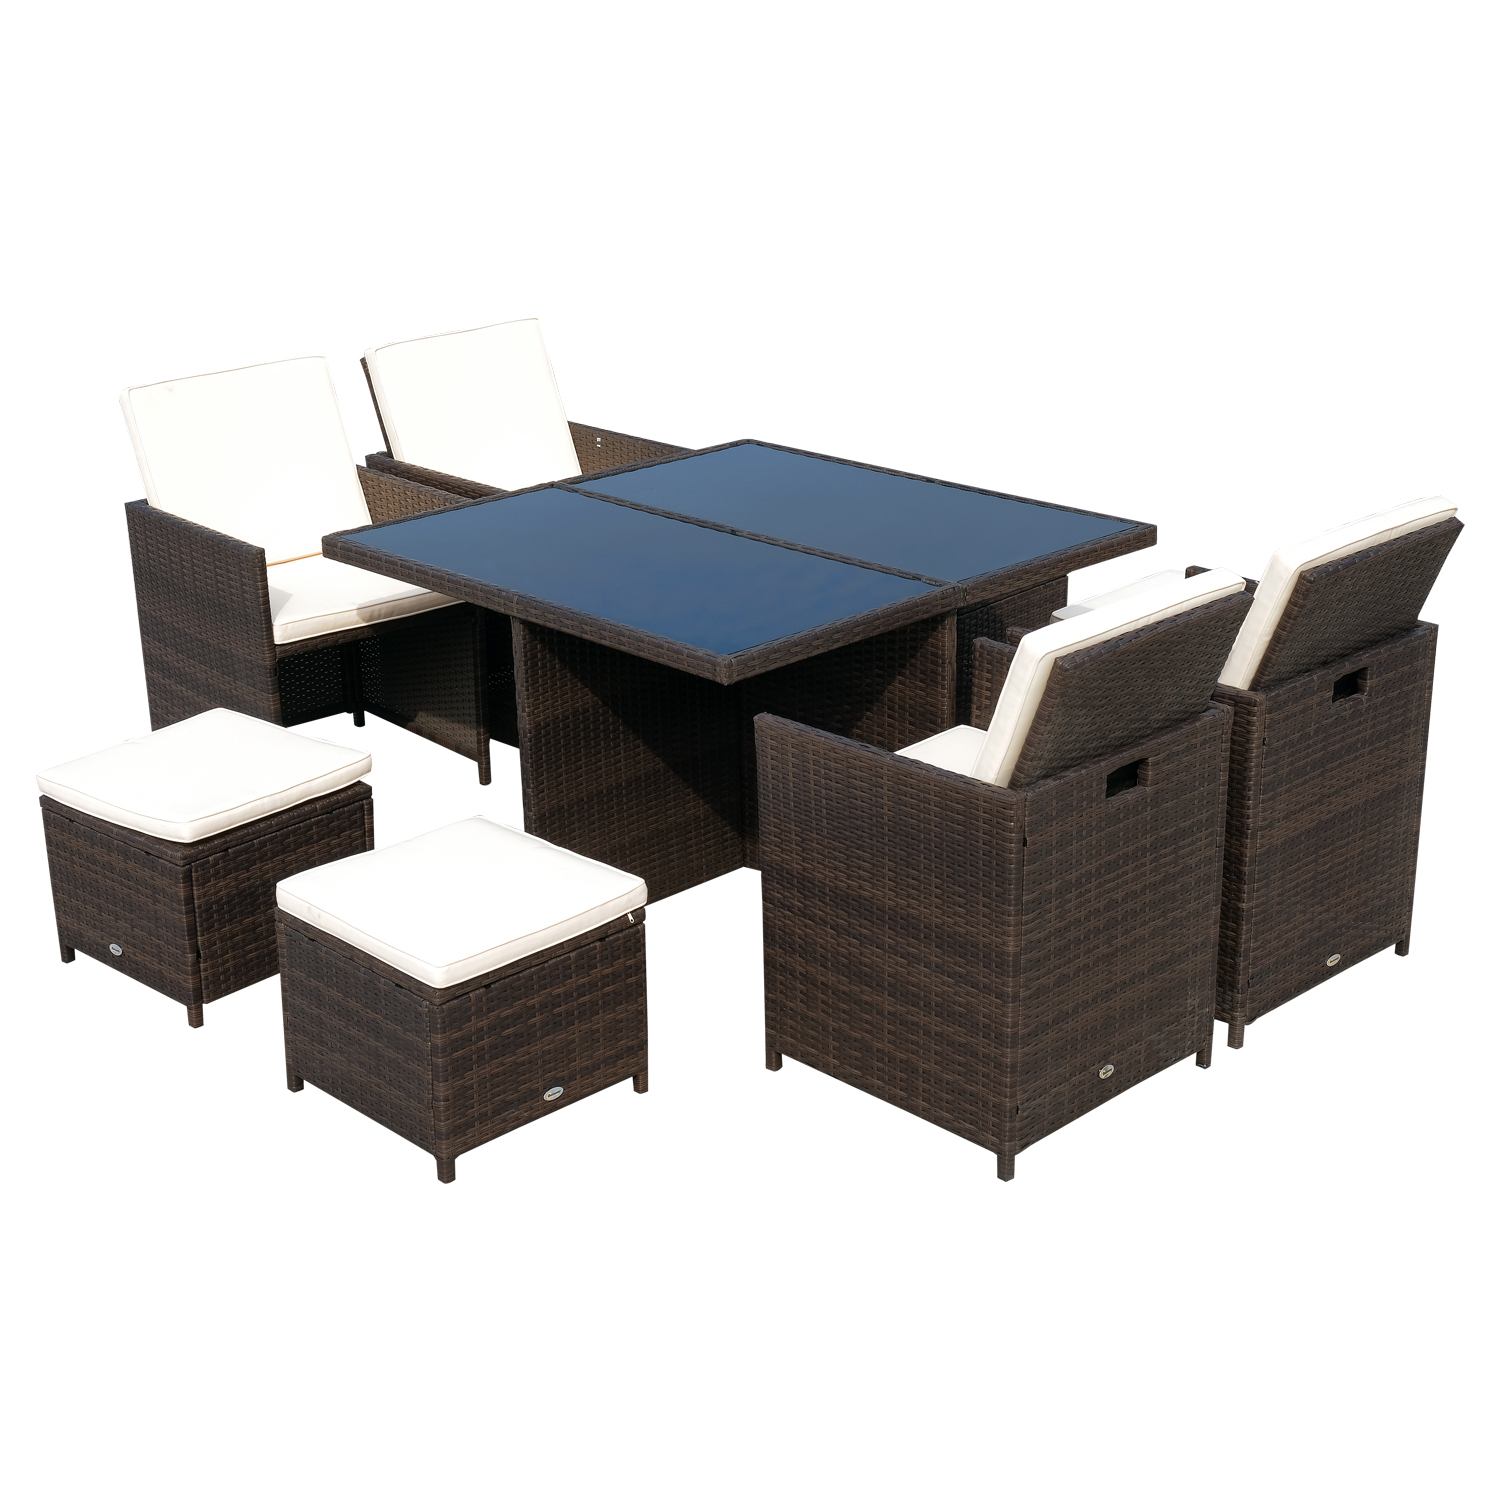 Outsunny Set Furniture Rattan Dining Table, 4 Chairs And 4 Foot Rest 9 PCs With Cushions Outdoor Garden PE Rattan Brown